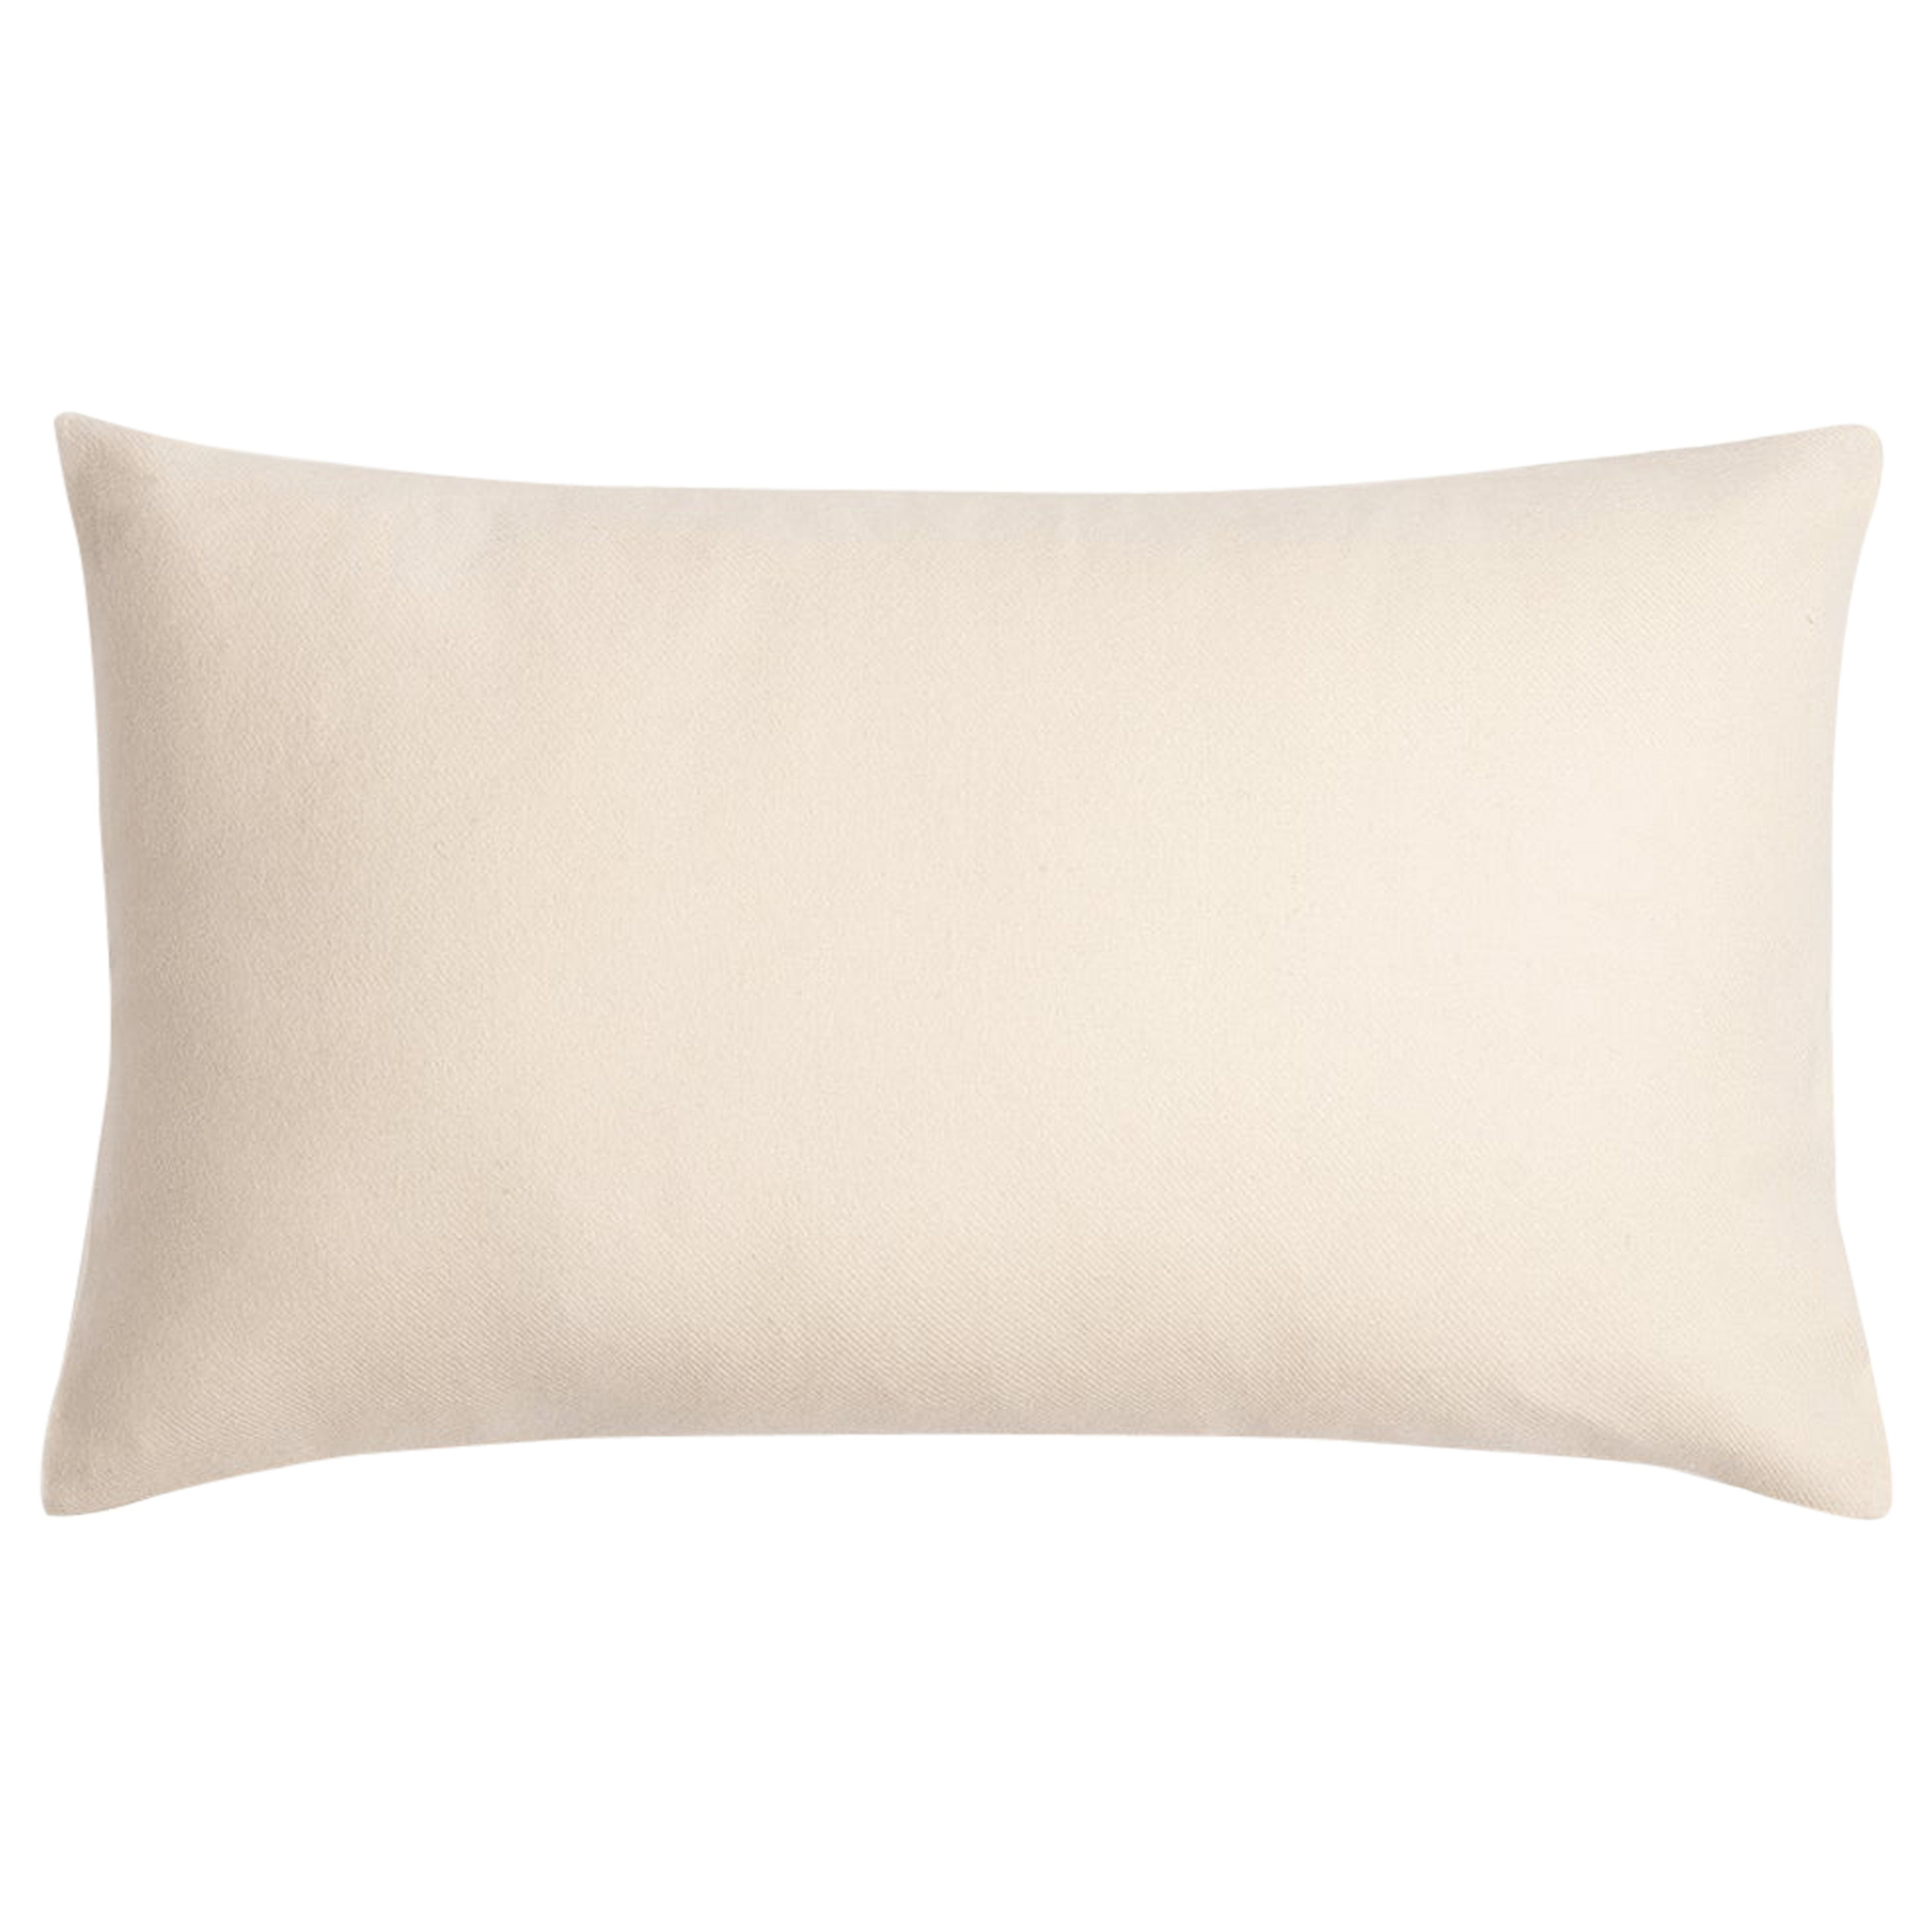 """Ben Soleimani Cashmere Pillow Cover - Ivory 13""""x21"""""""